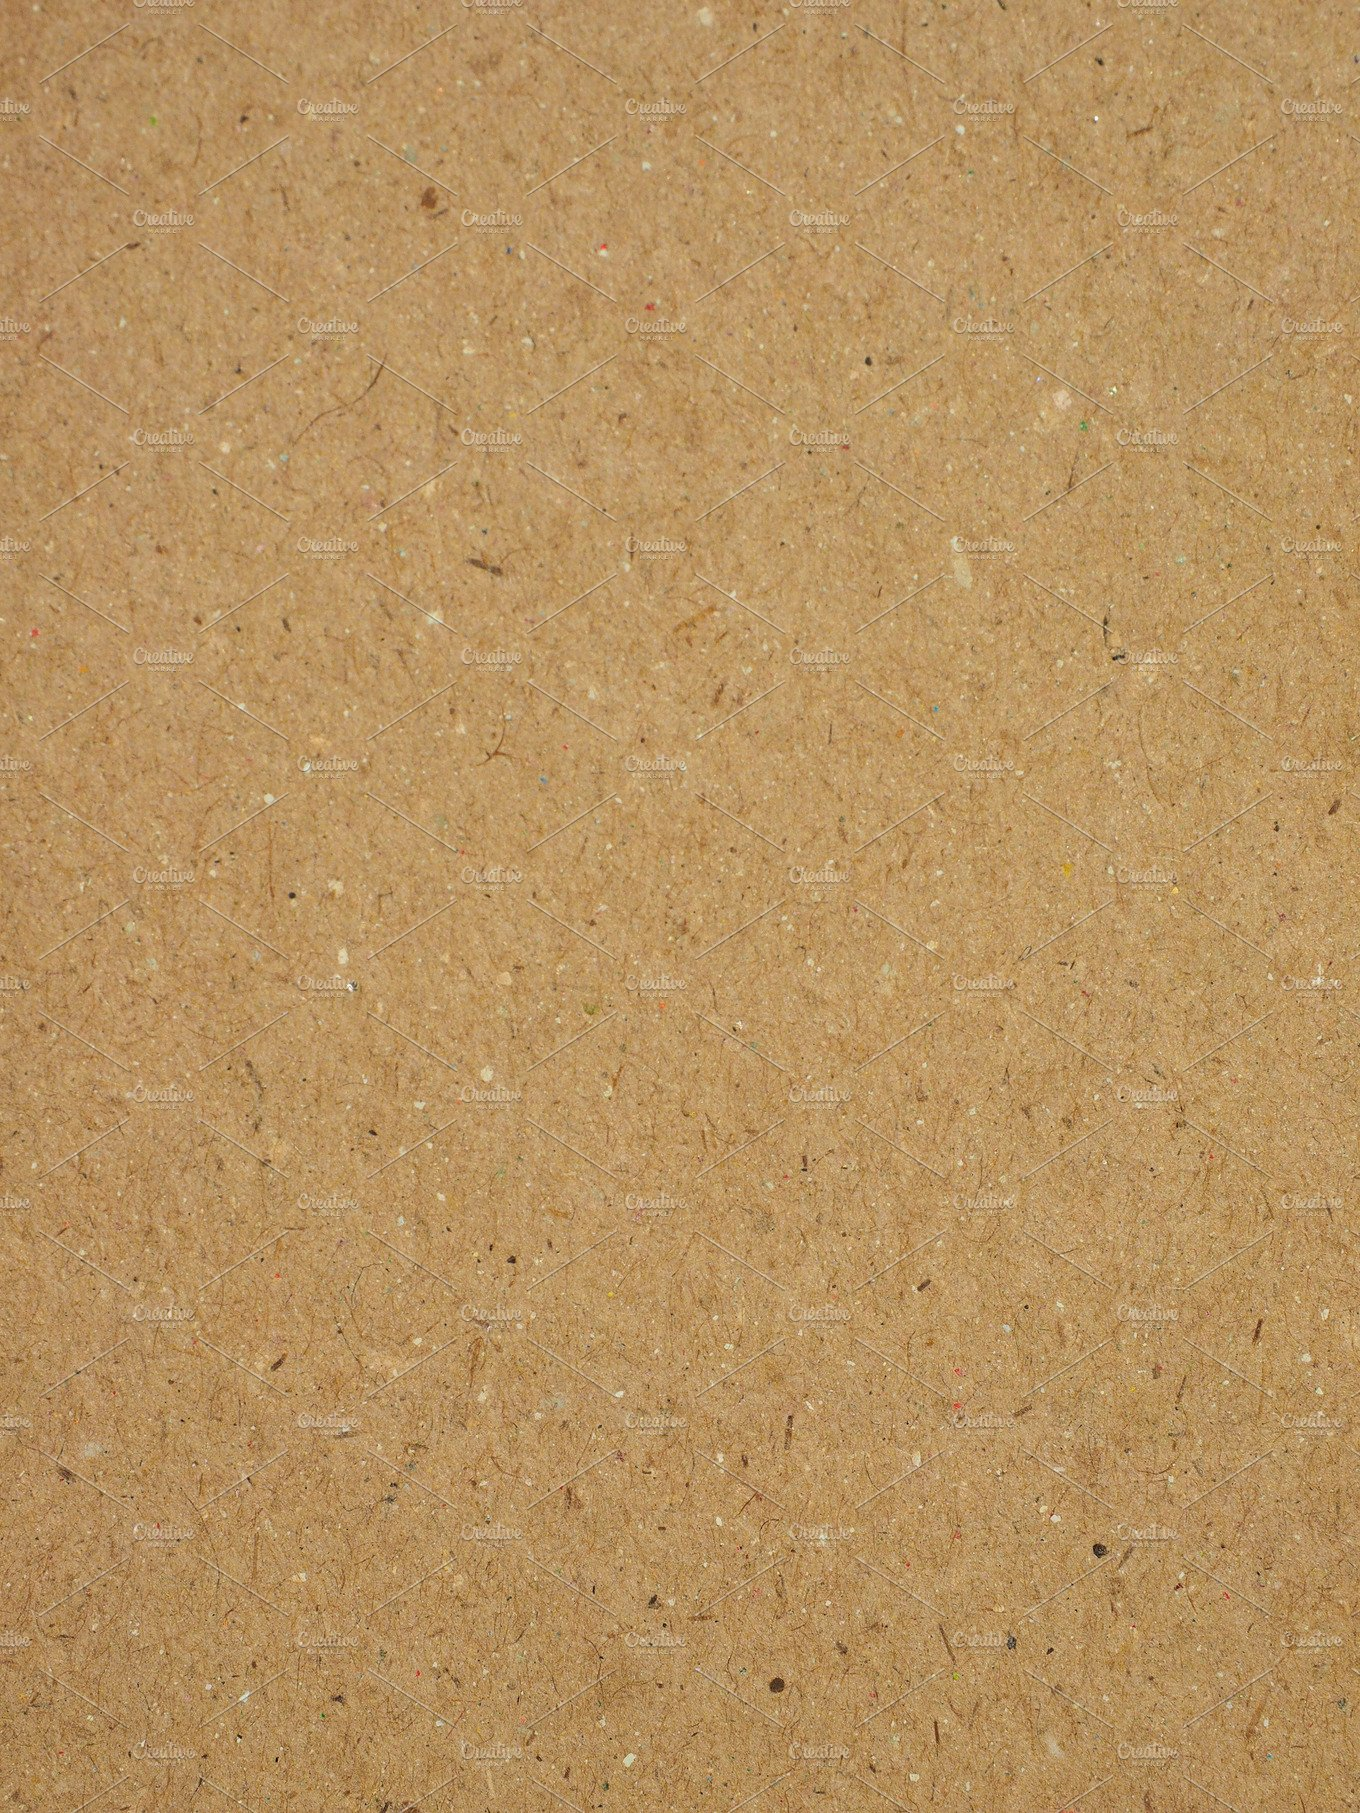 Cardboard Background Abstract Photos Creative Market